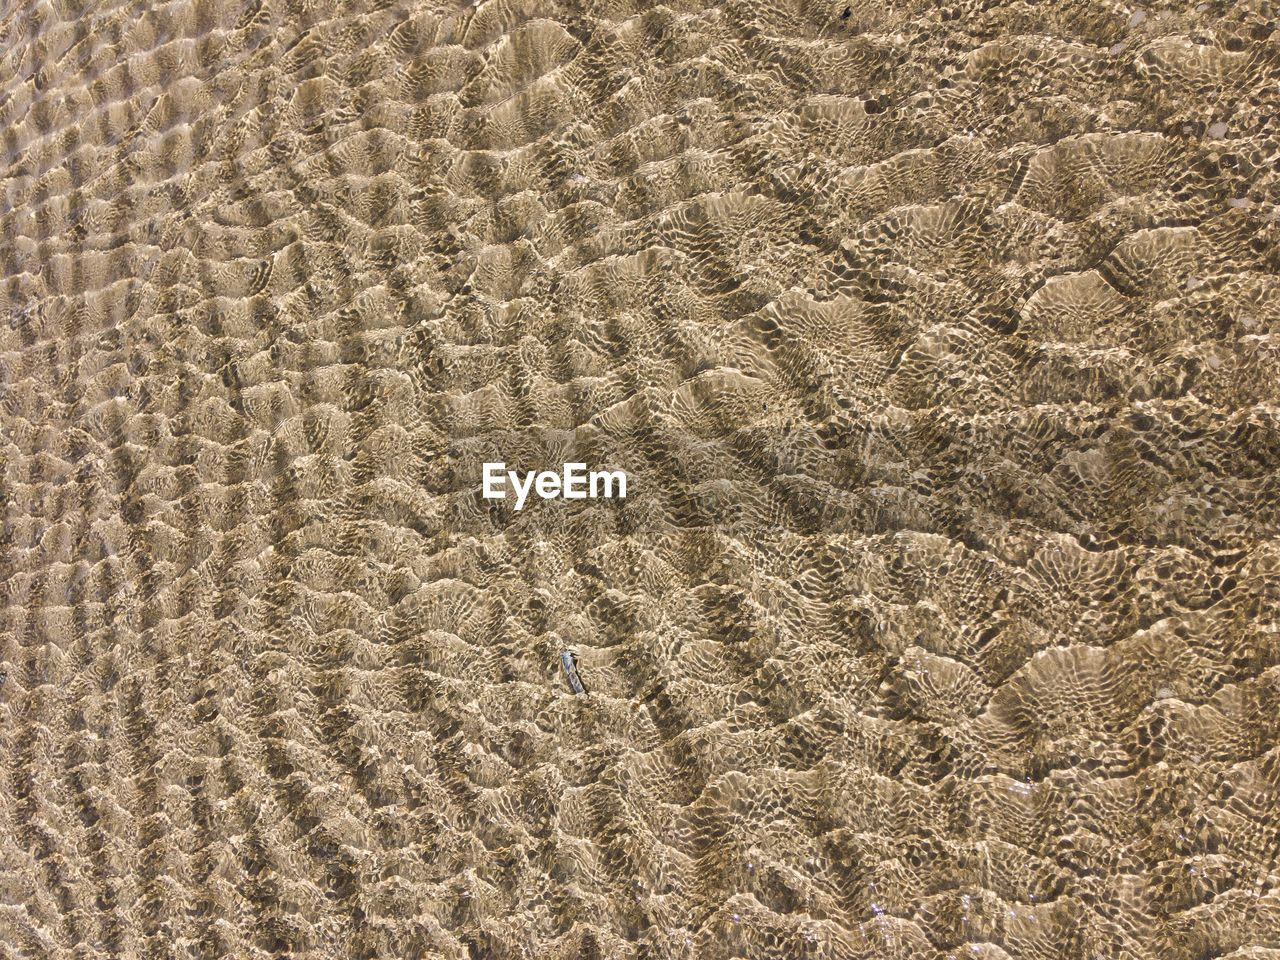 backgrounds, full frame, sand, pattern, land, beach, no people, textured, high angle view, nature, brown, day, beauty in nature, close-up, tranquility, natural pattern, outdoors, wave pattern, animal, sunlight, arid climate